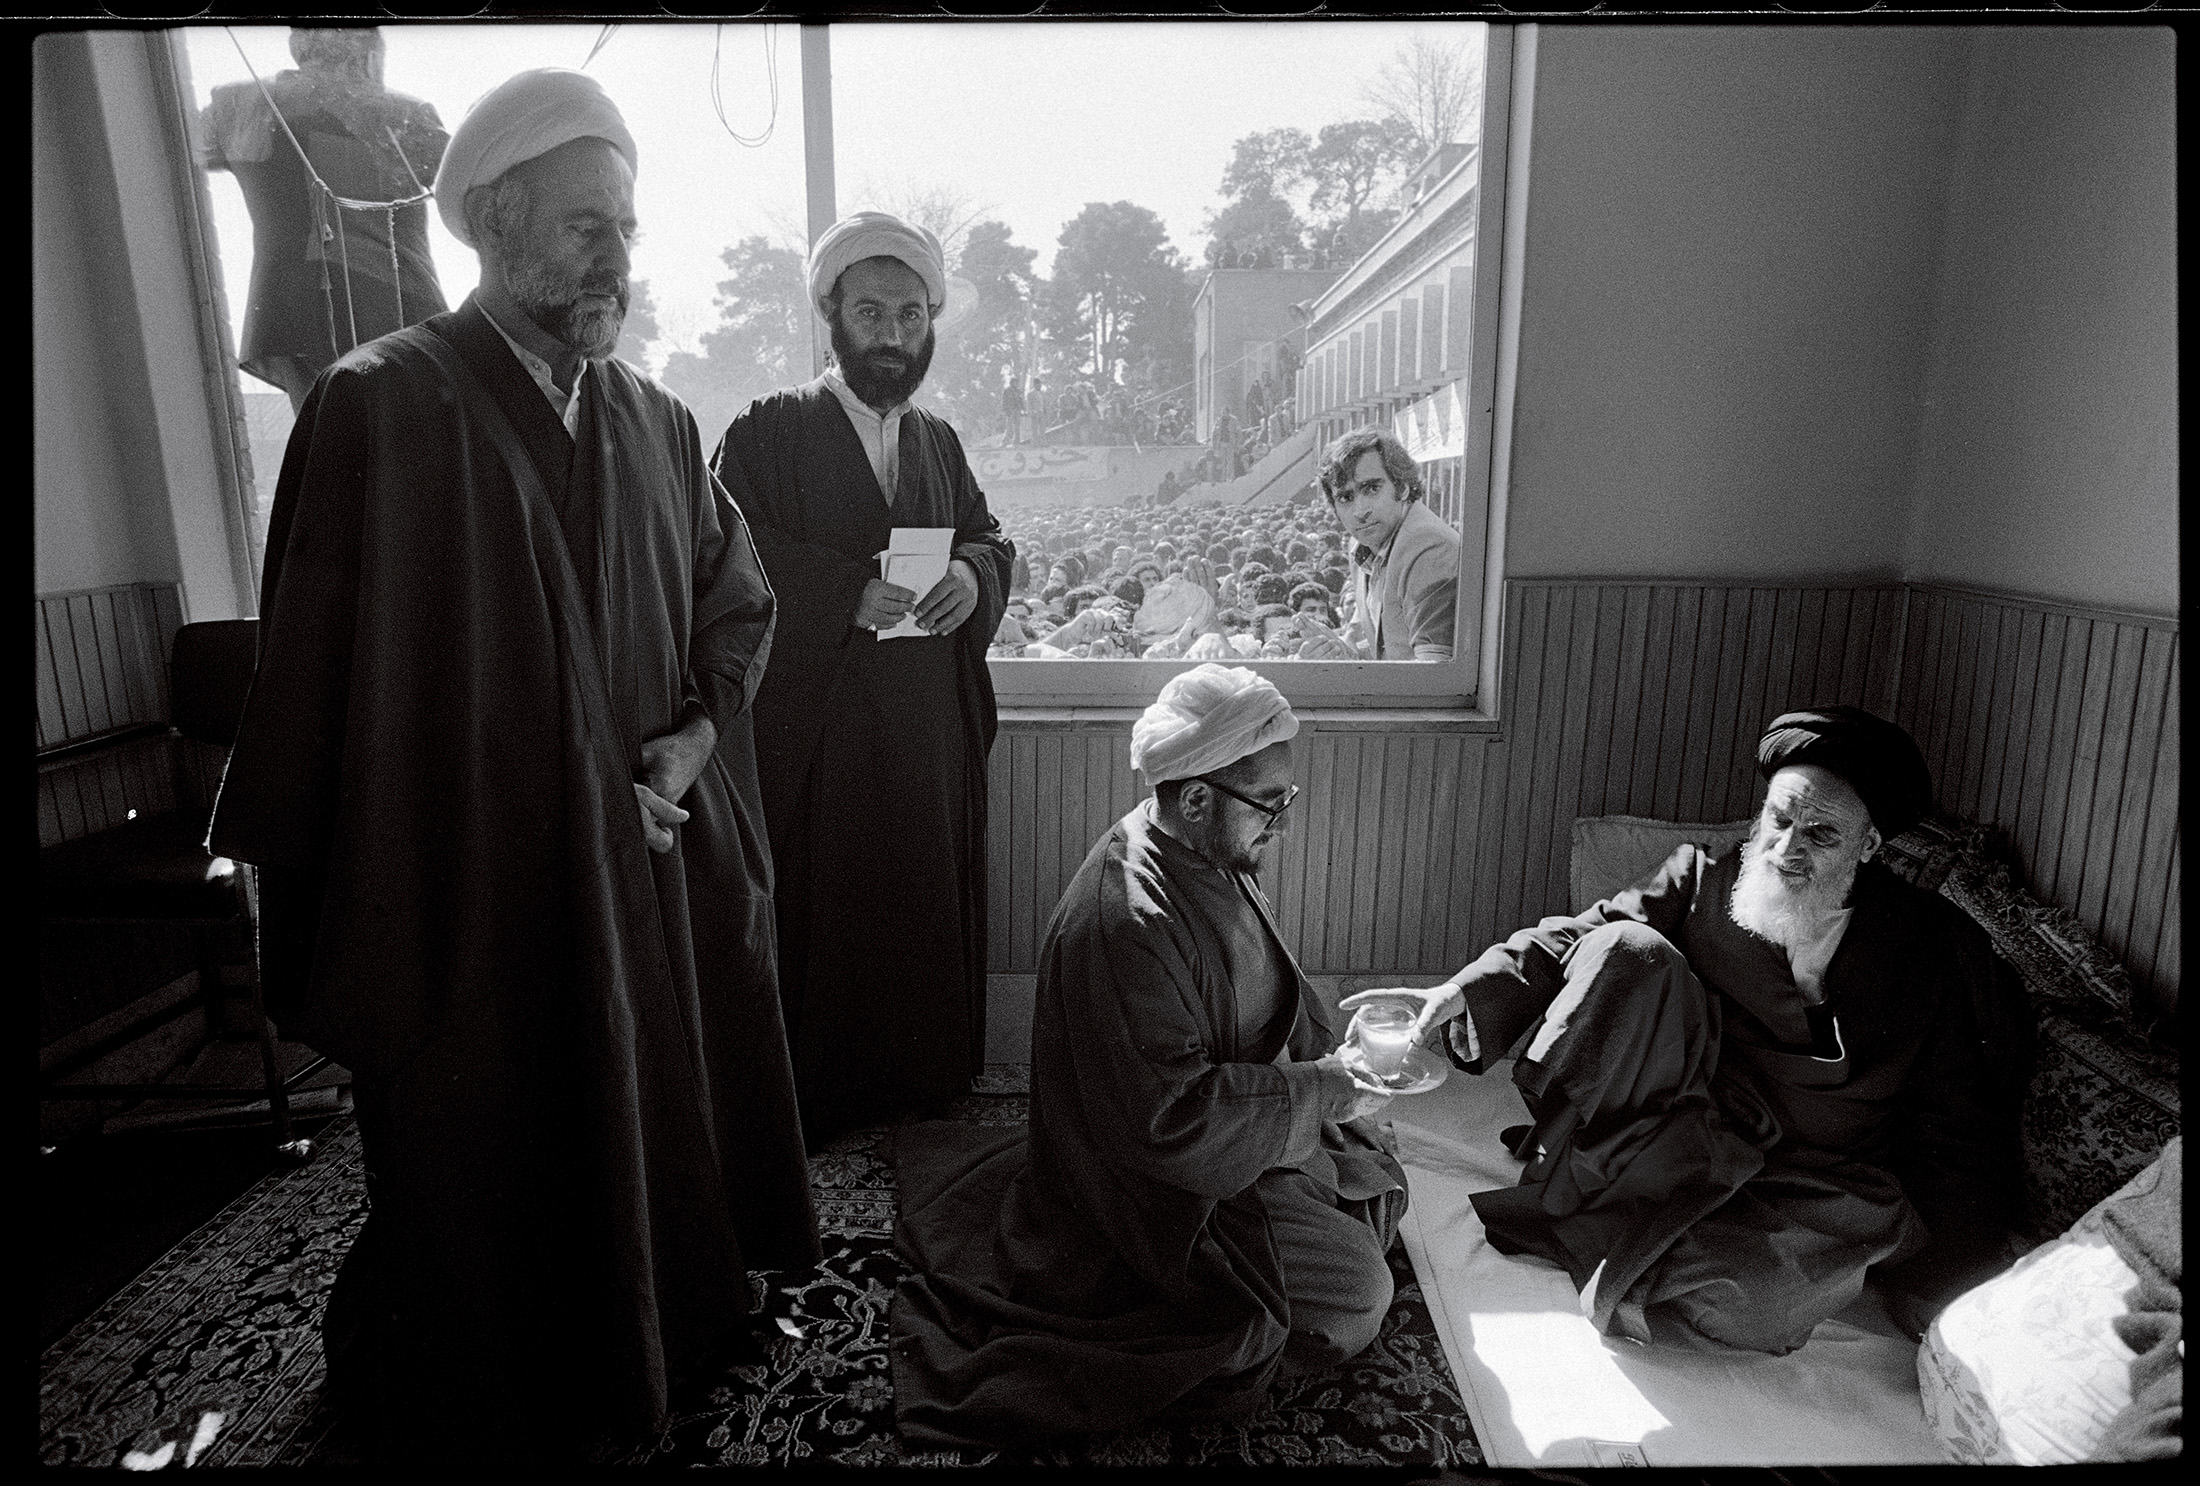 """Ayatollah Khomeini is served tea in his room at the Refah School by Sadegh Khalkhali, who later became known as """"the hanging judge."""" Tehran, February 5, 1979.© 2015 David Burnett/Contact Press Images"""